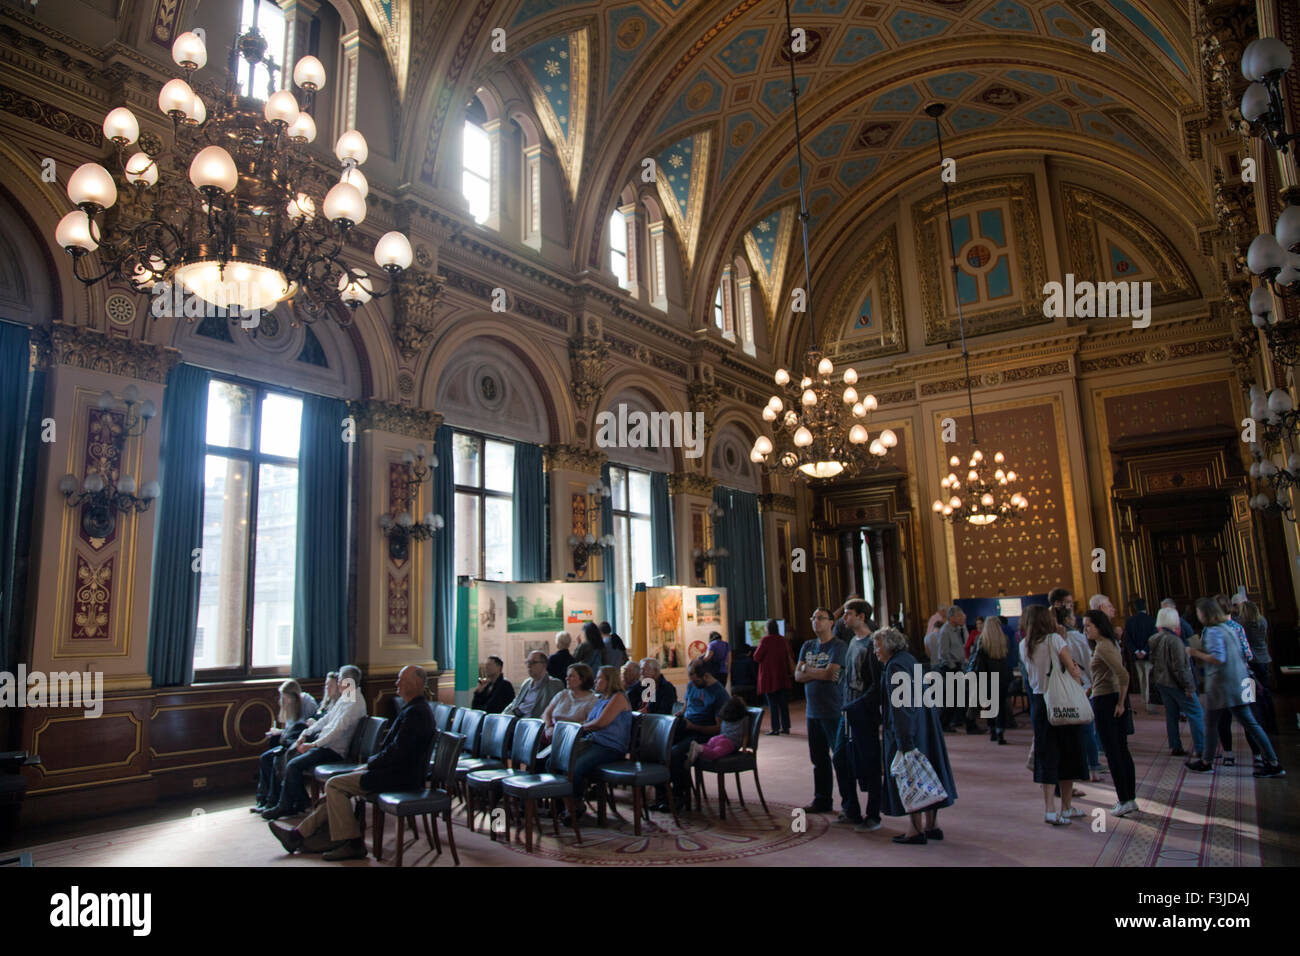 Open house day at foreign commonwealth office the locarno suite stock photo royalty free - British foreign commonwealth office ...